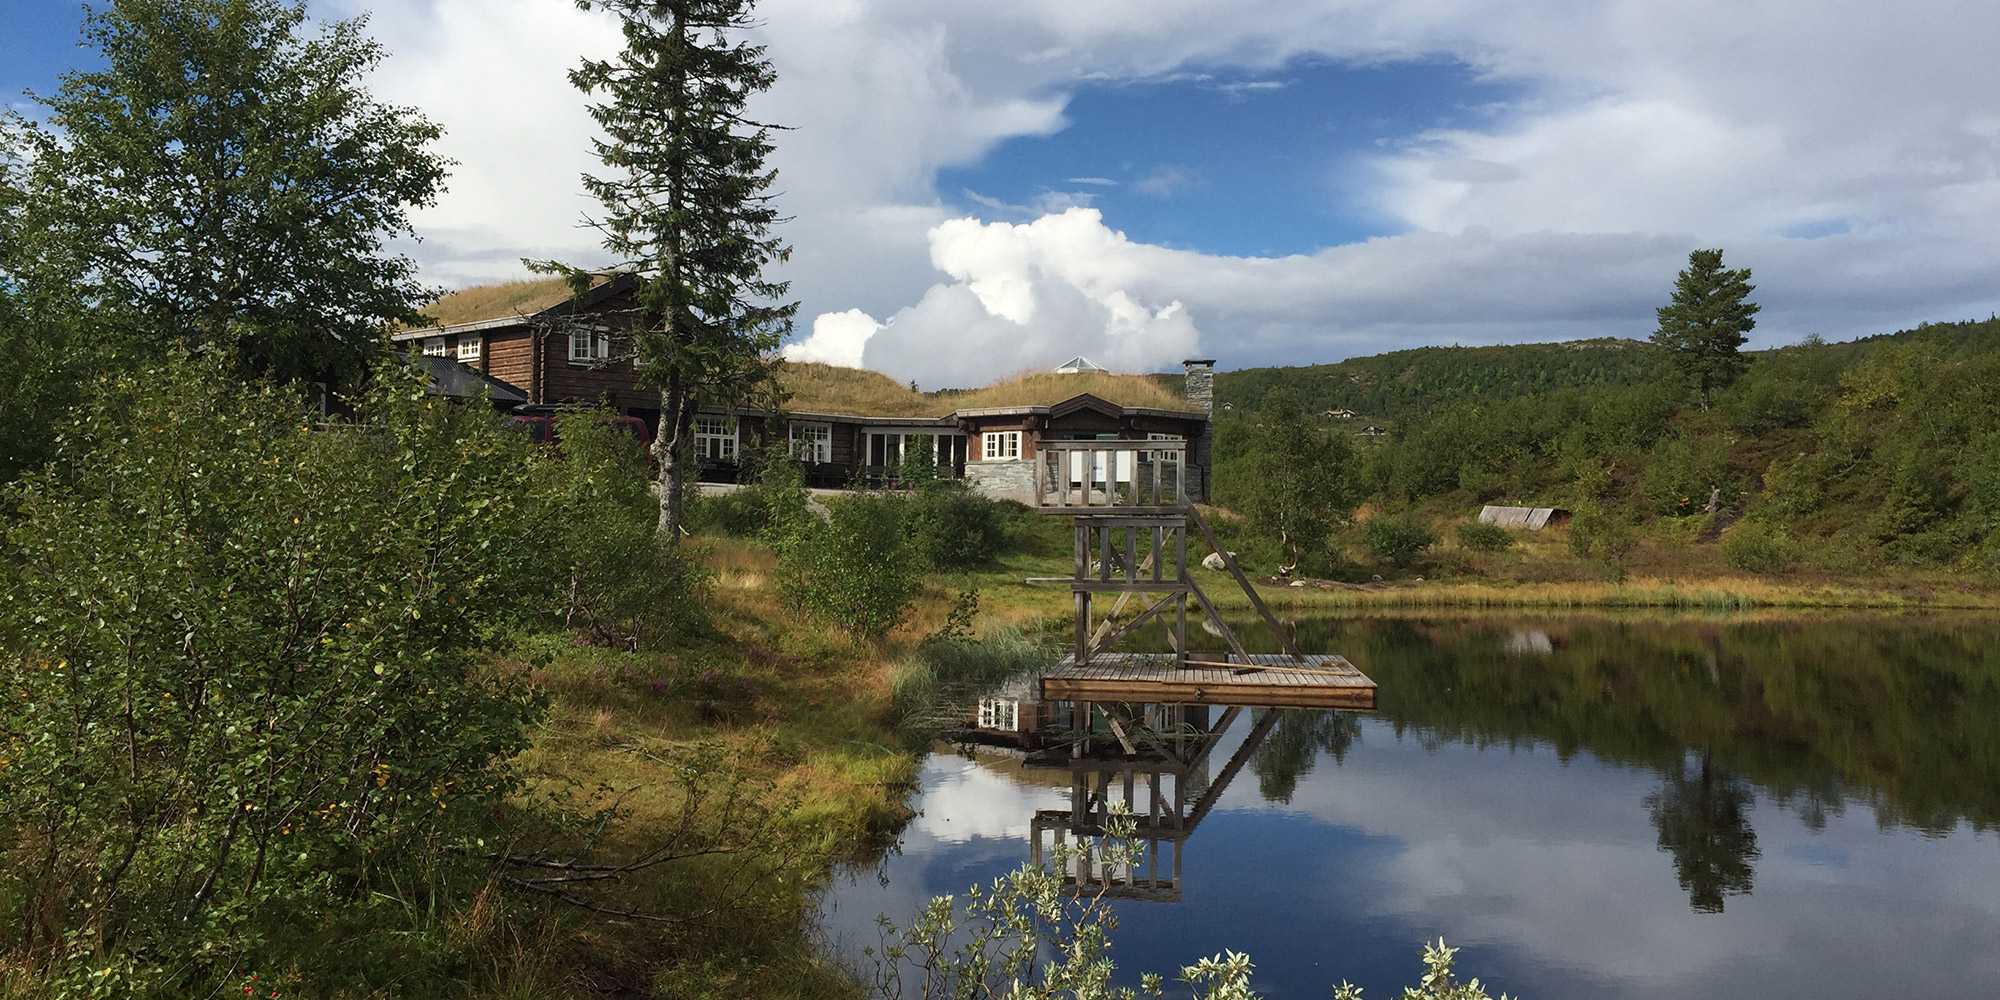 Ismenningen Lodge & Cabin rental in summer. Copyright: Ismenningen